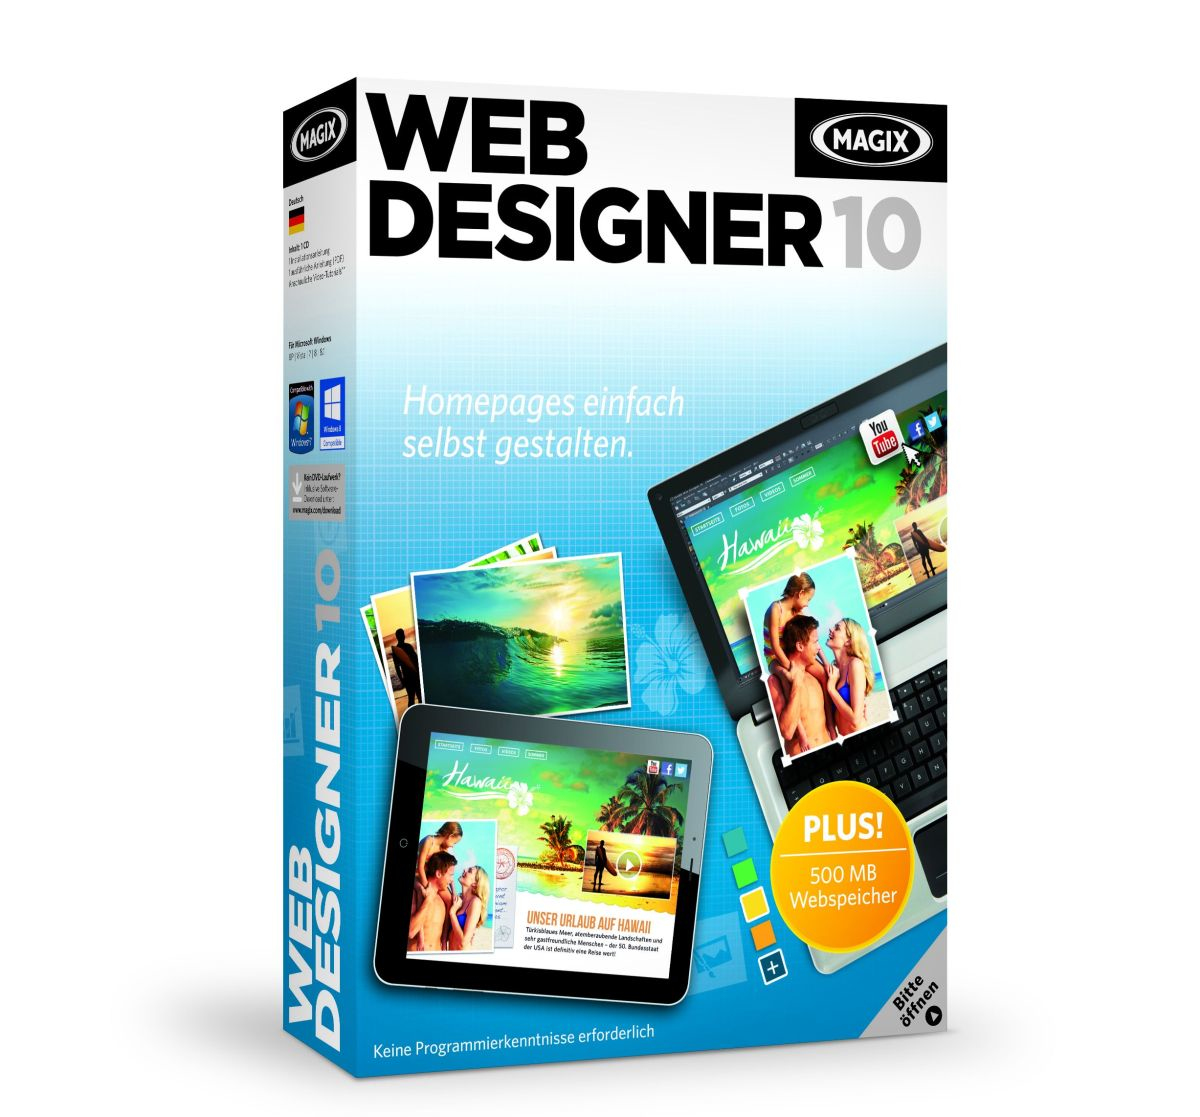 MAGIX Web Designer 10 - Electronic Software Download 779146 - C2000